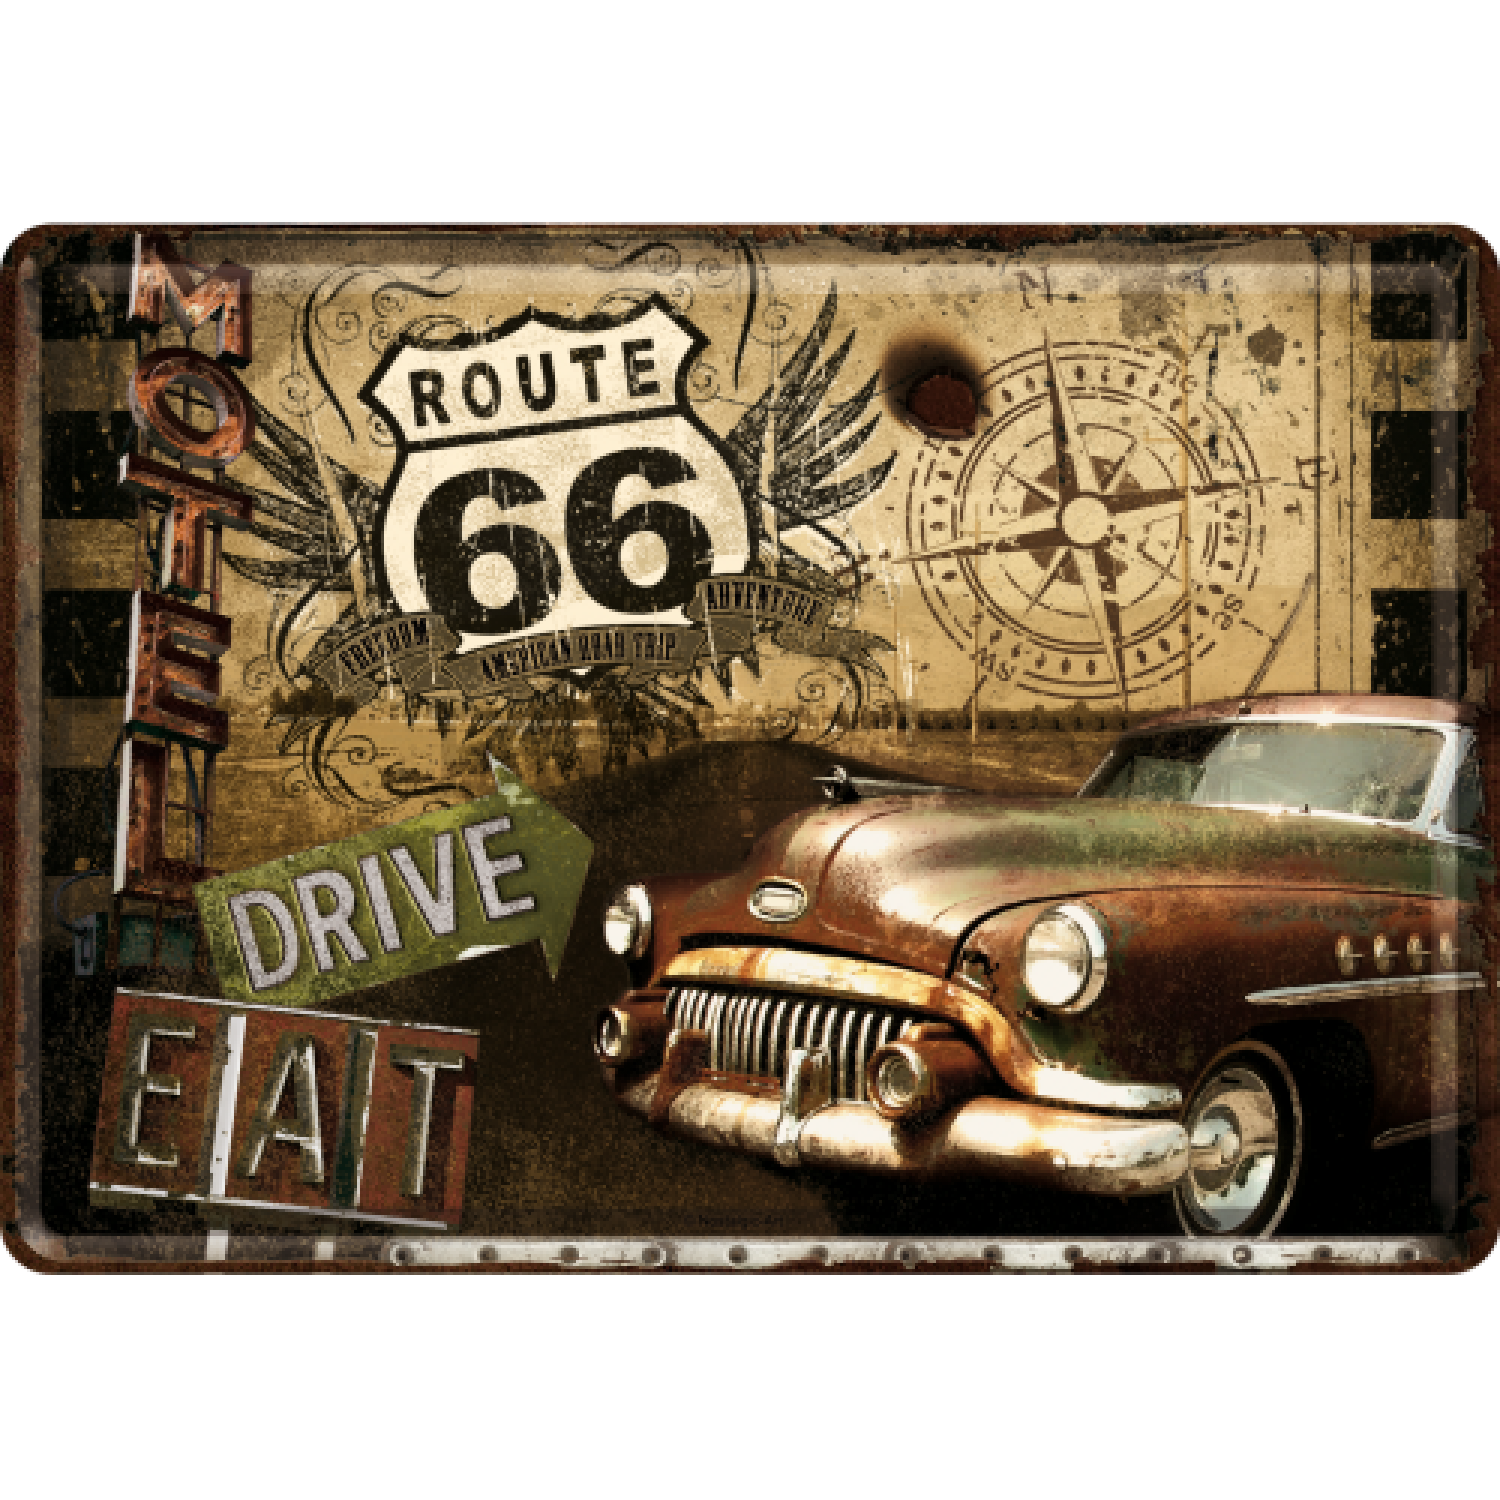 Metalna razglednica - Route 66 (Drive, Eat)